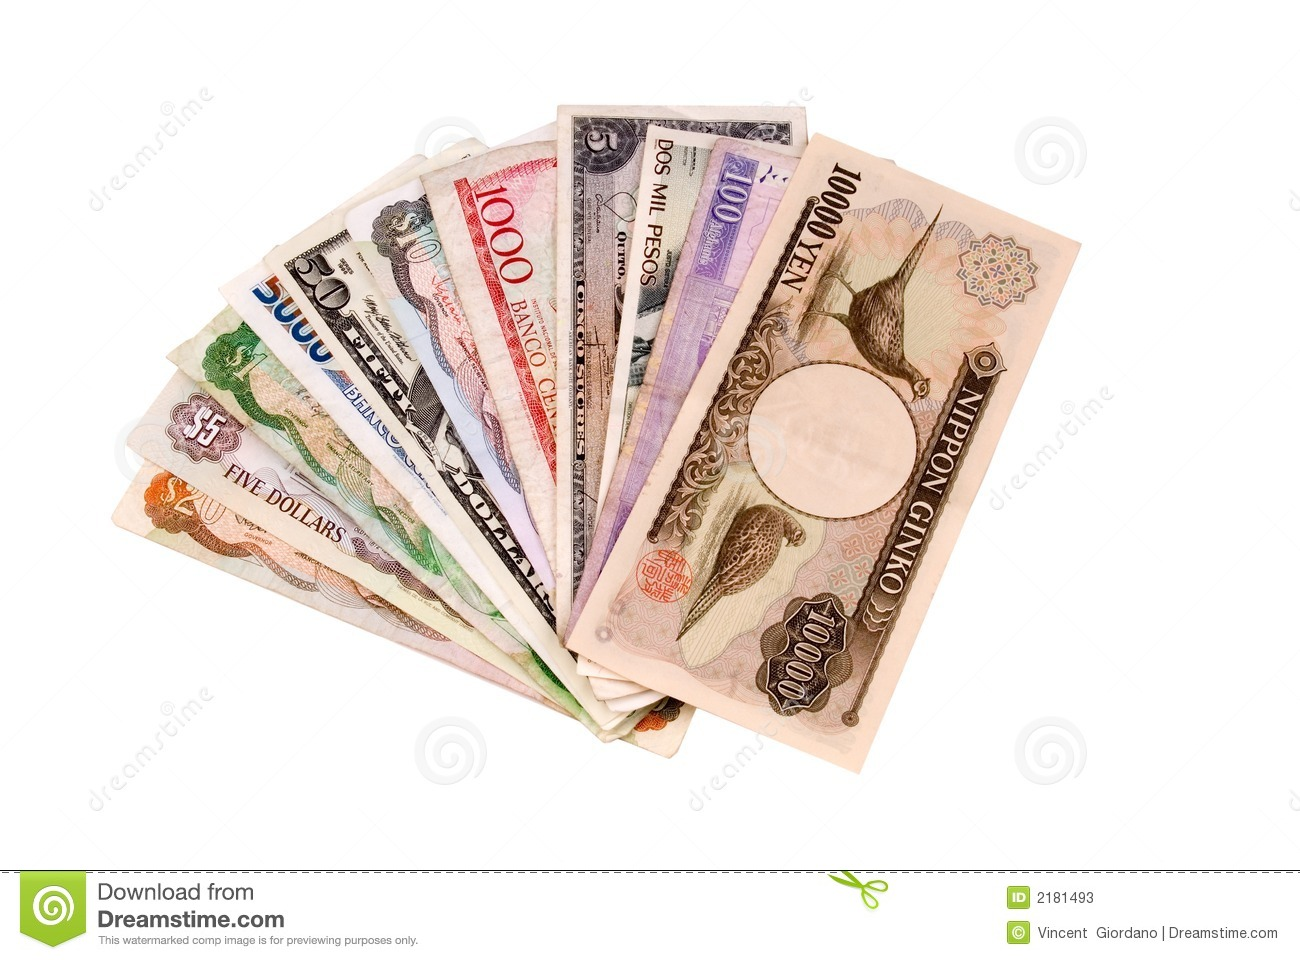 Where can i sell foreign currency